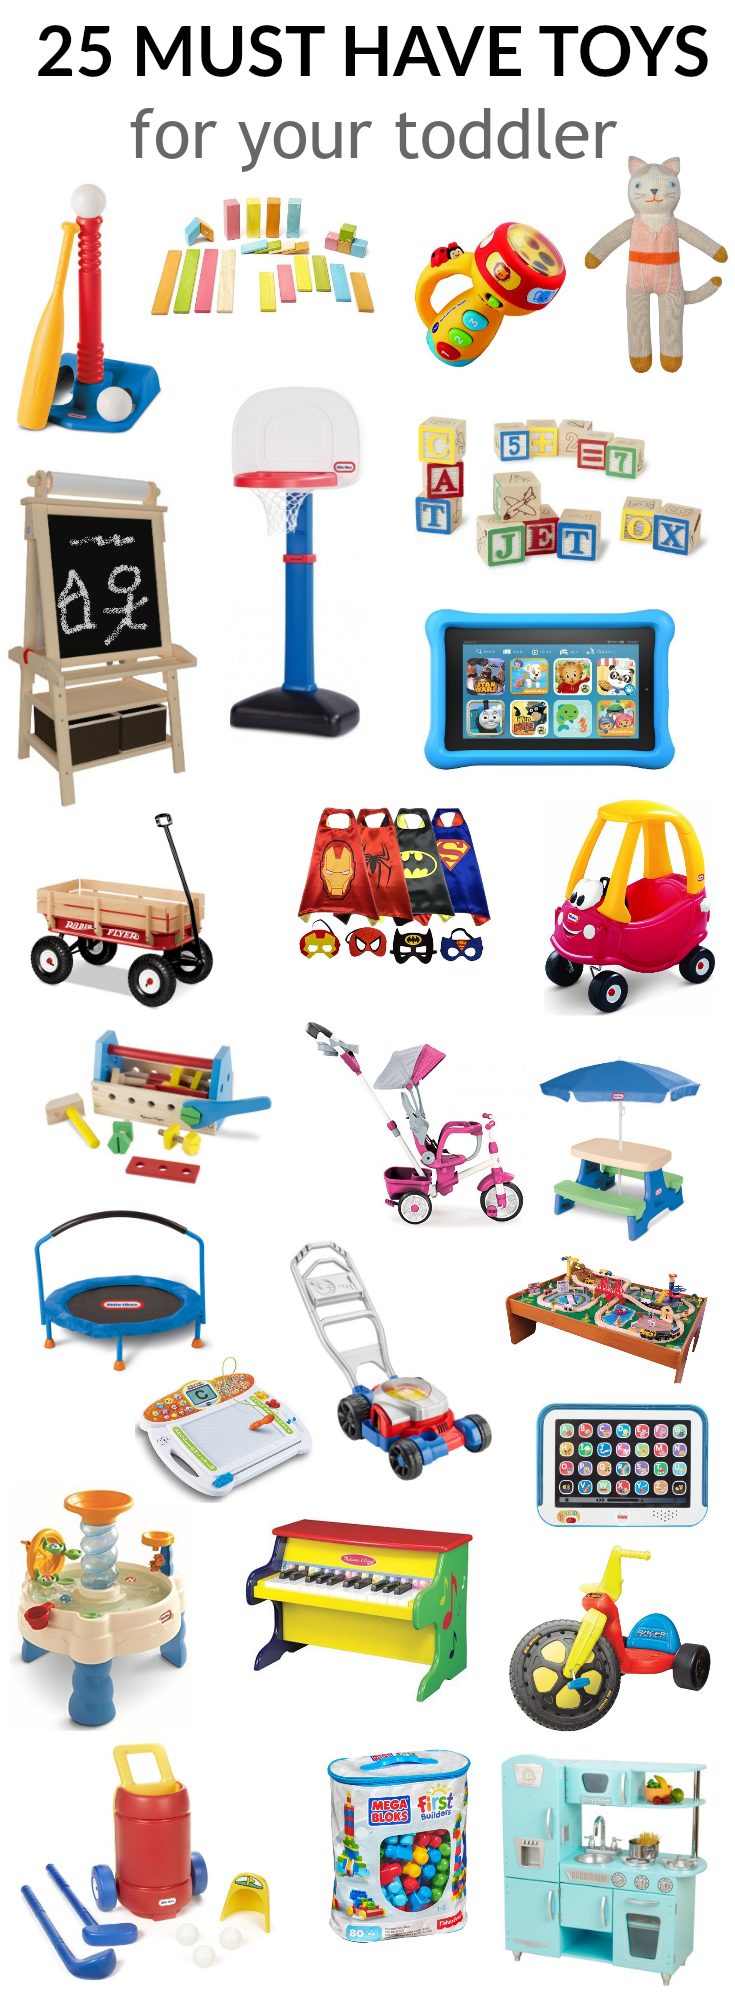 Good Toys For Toddlers : Must have toddler toys katie did what